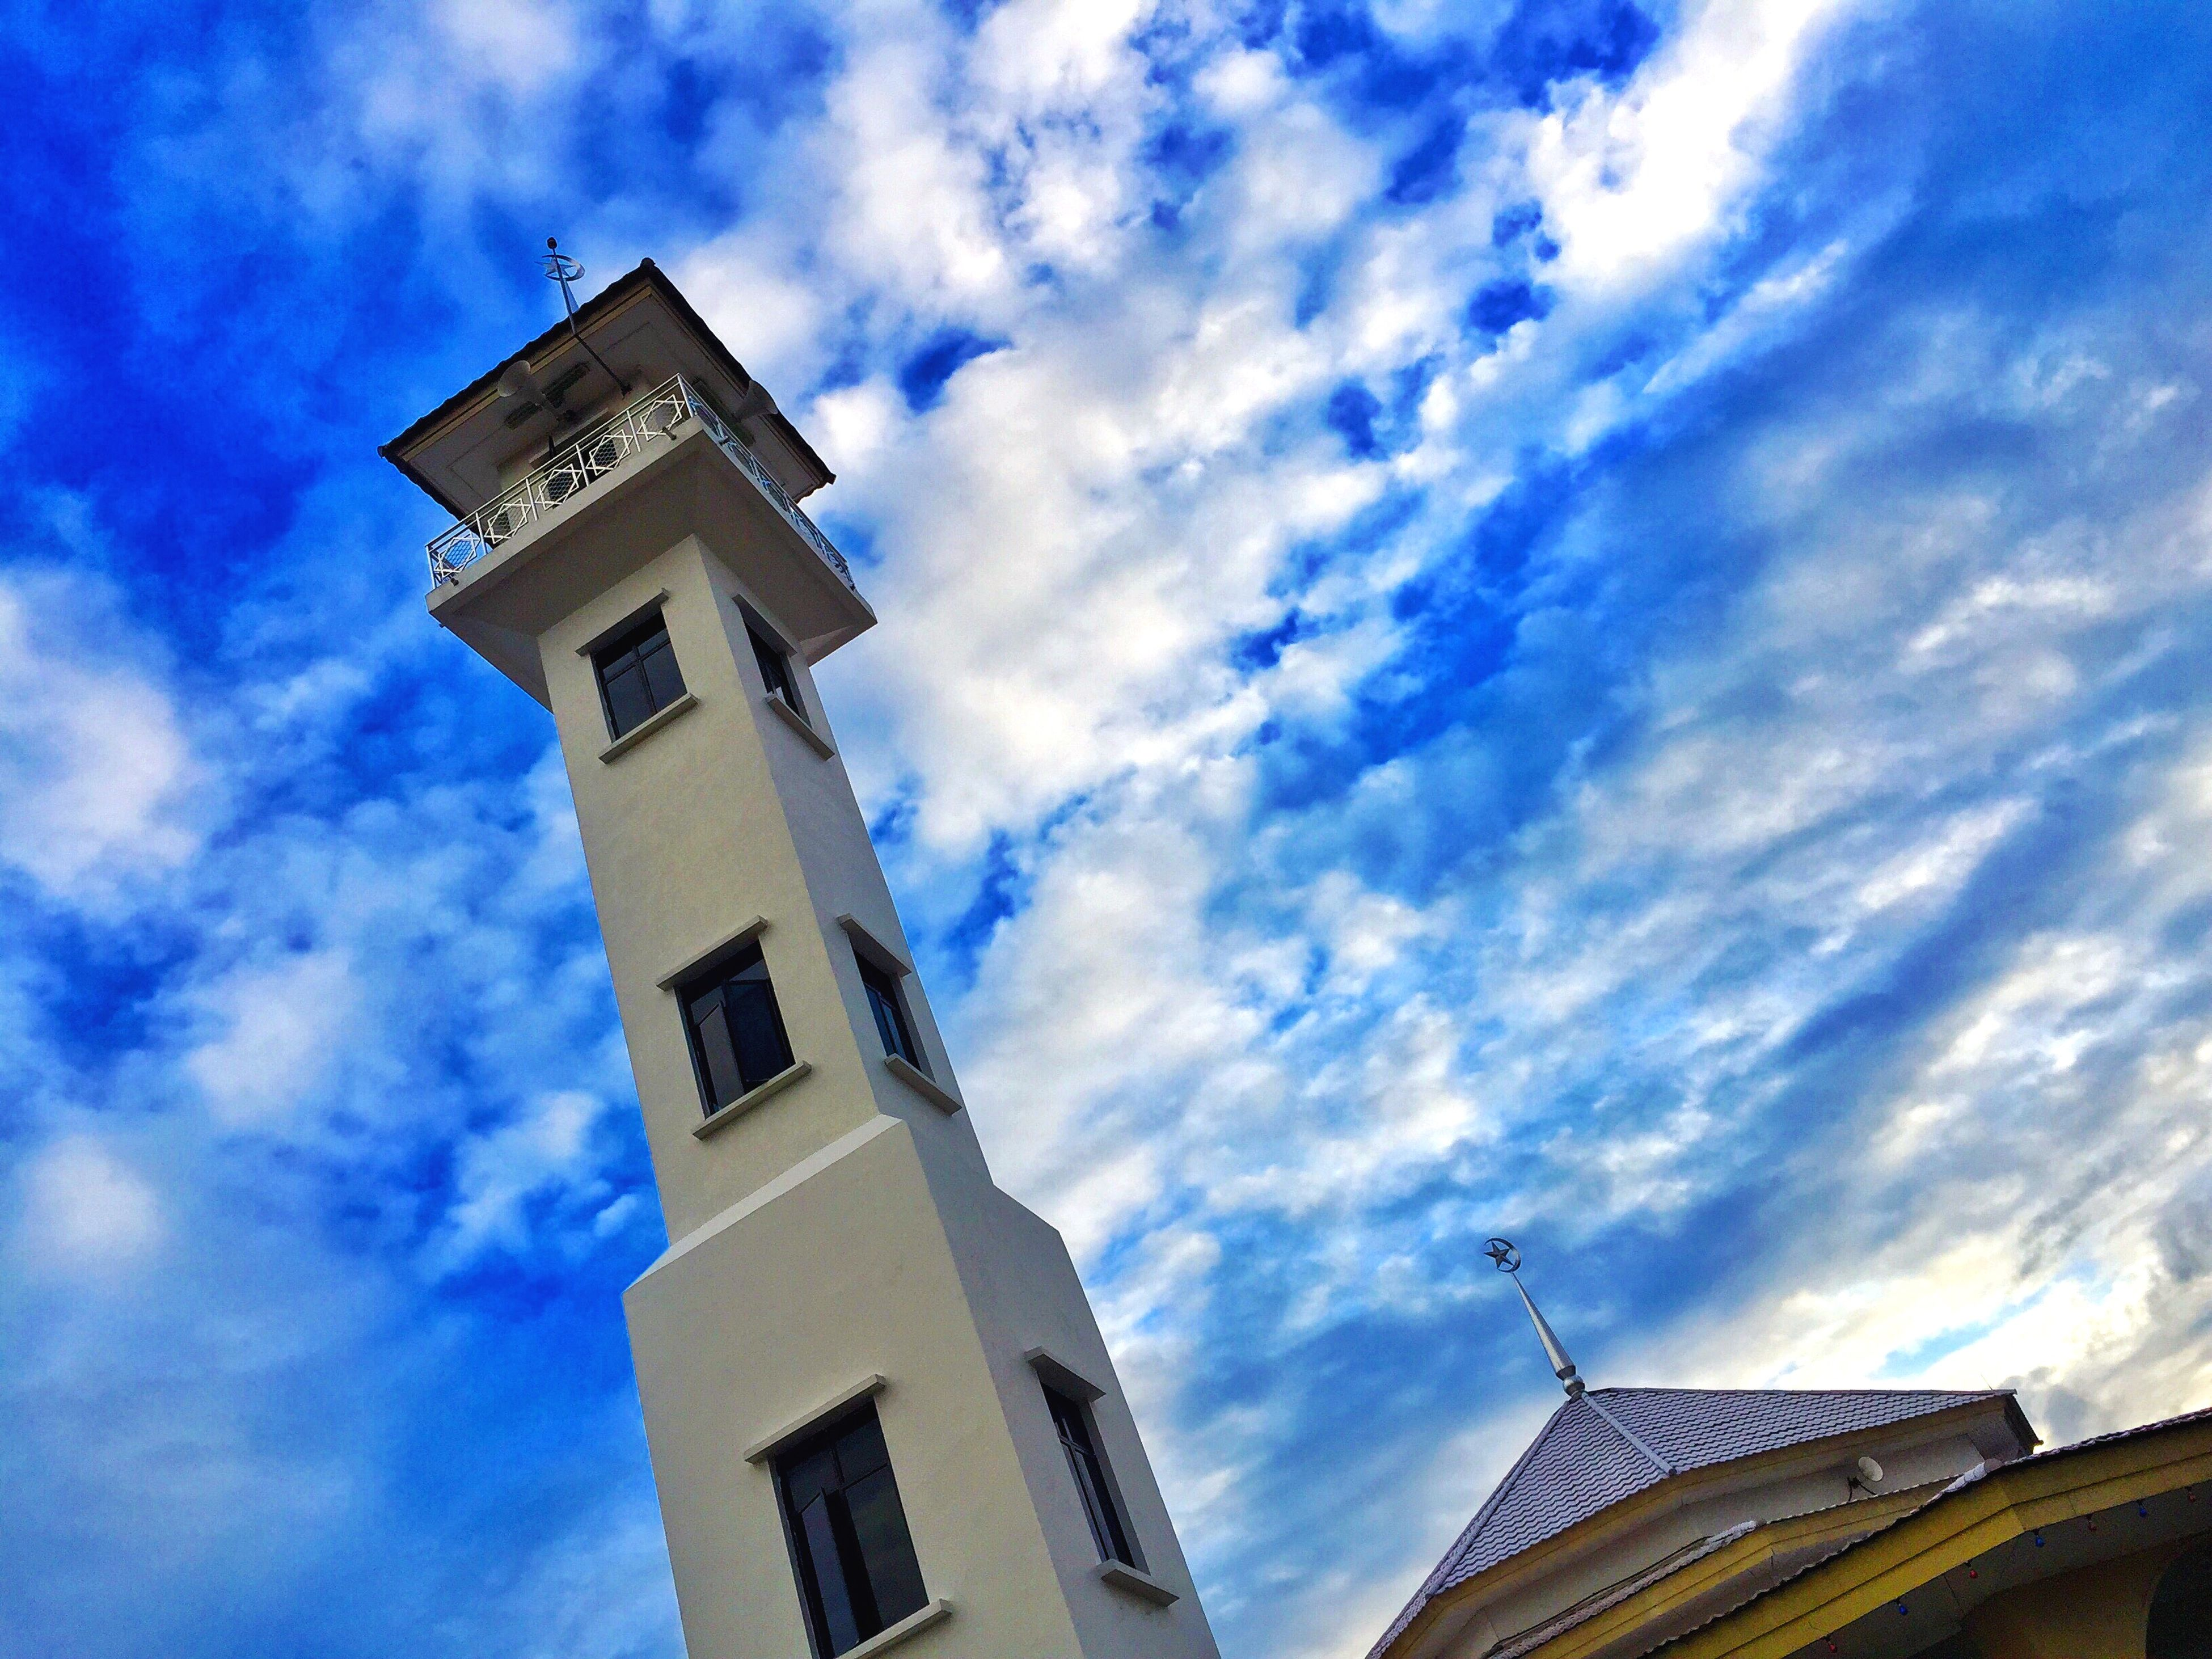 low angle view, architecture, sky, built structure, building exterior, cloud - sky, tower, blue, cloud, cloudy, tall - high, high section, outdoors, day, clock tower, no people, sunlight, tall, nature, building